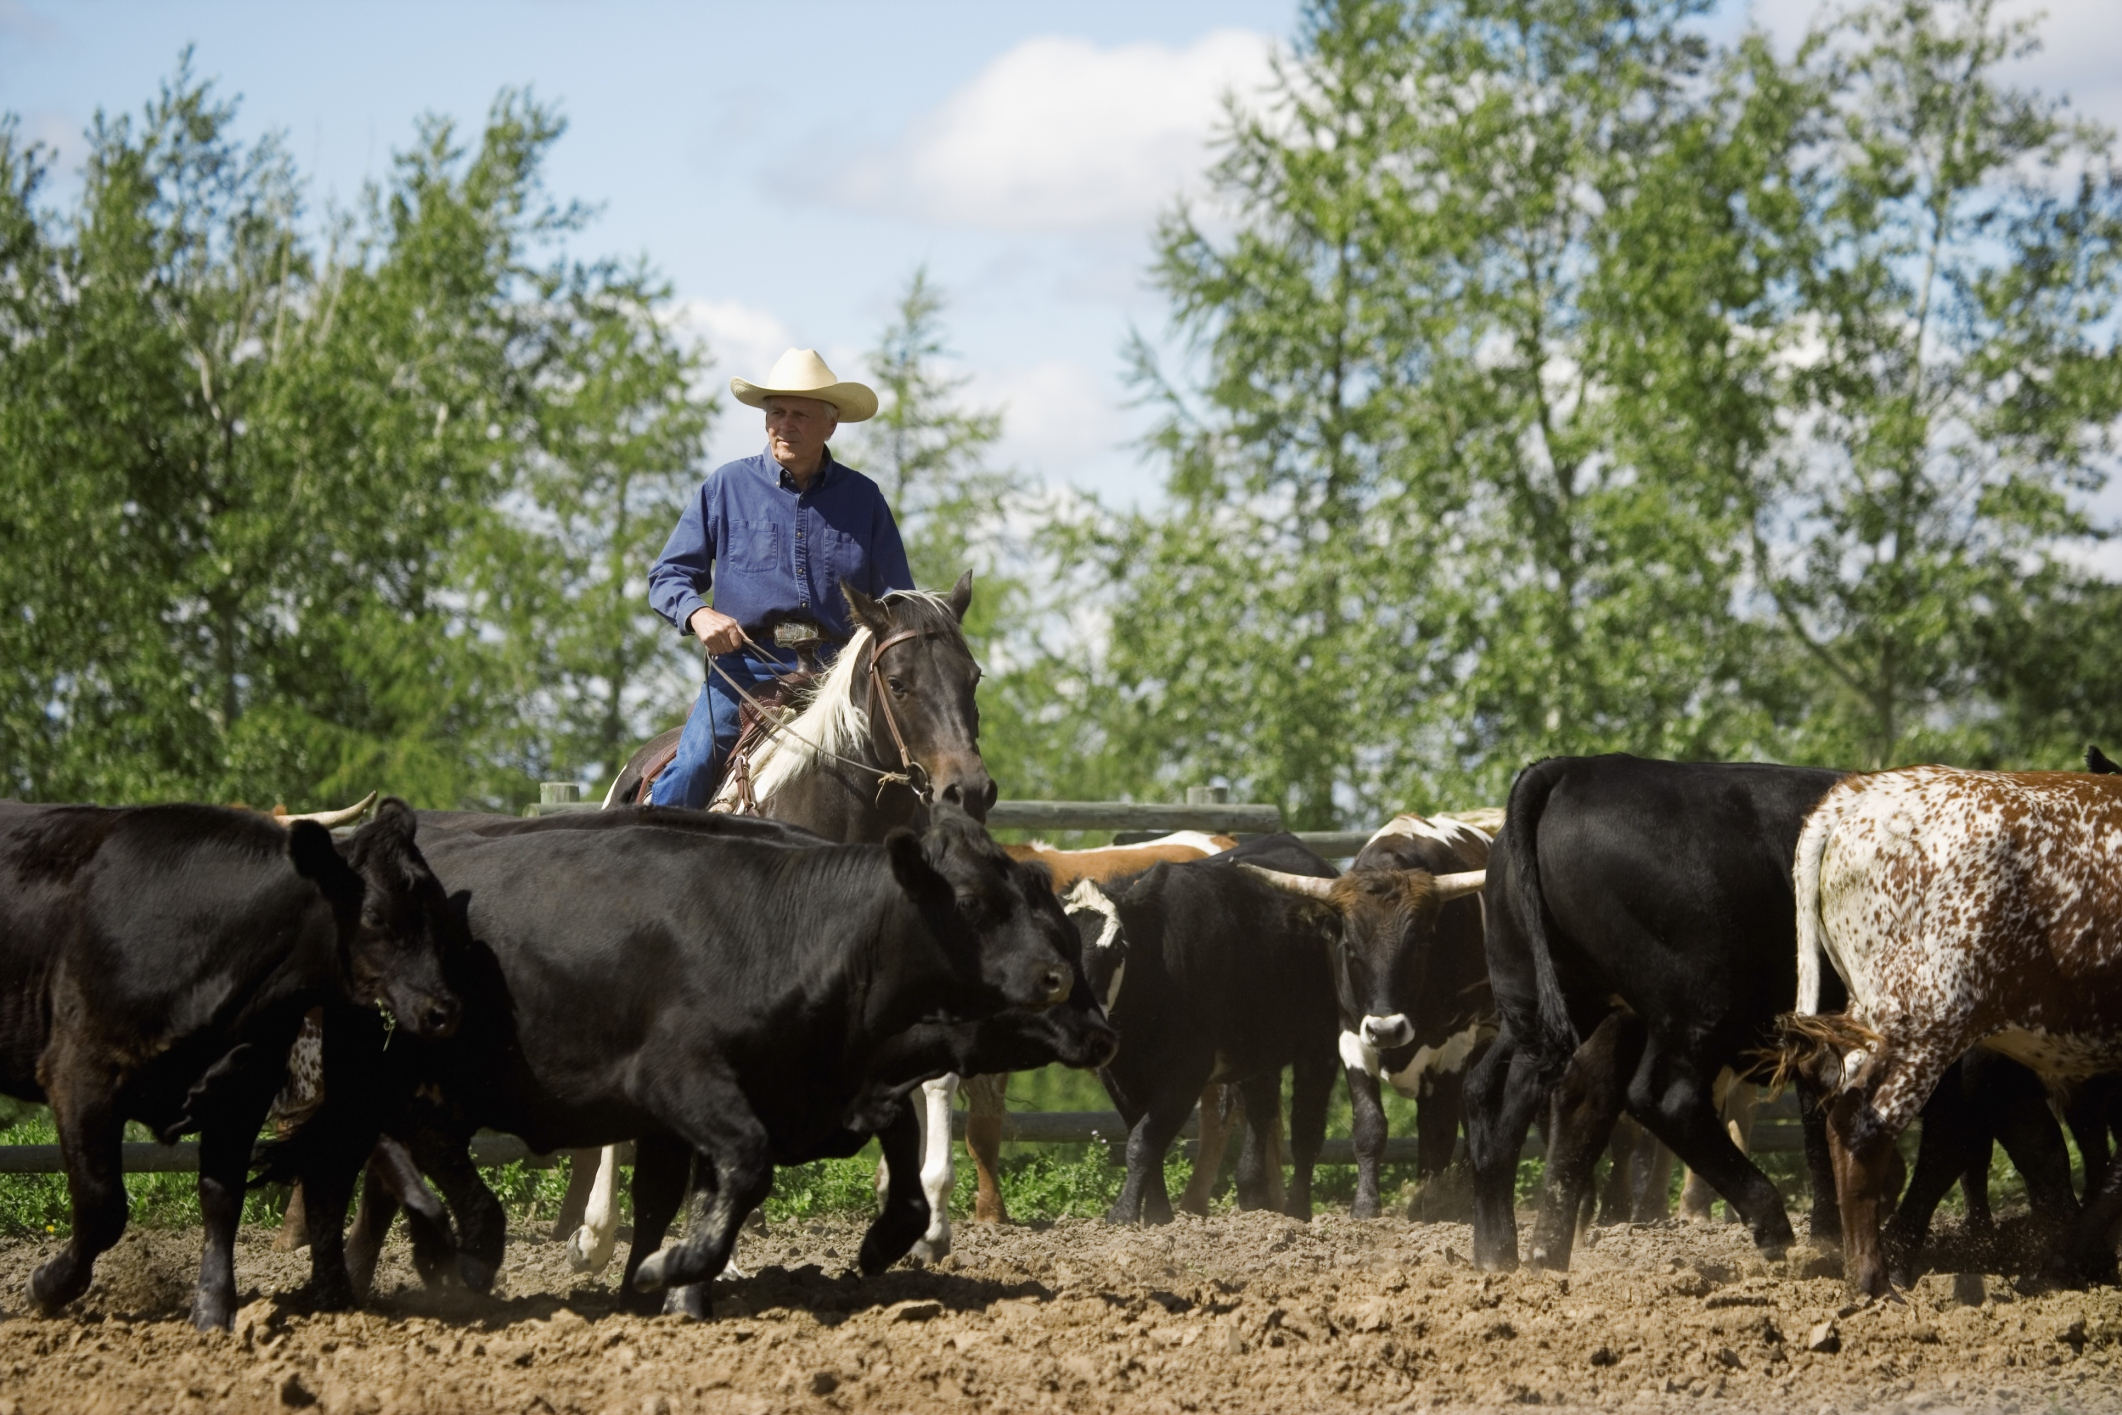 What Are the Dangers of Being a Cowboy? | Career Trend